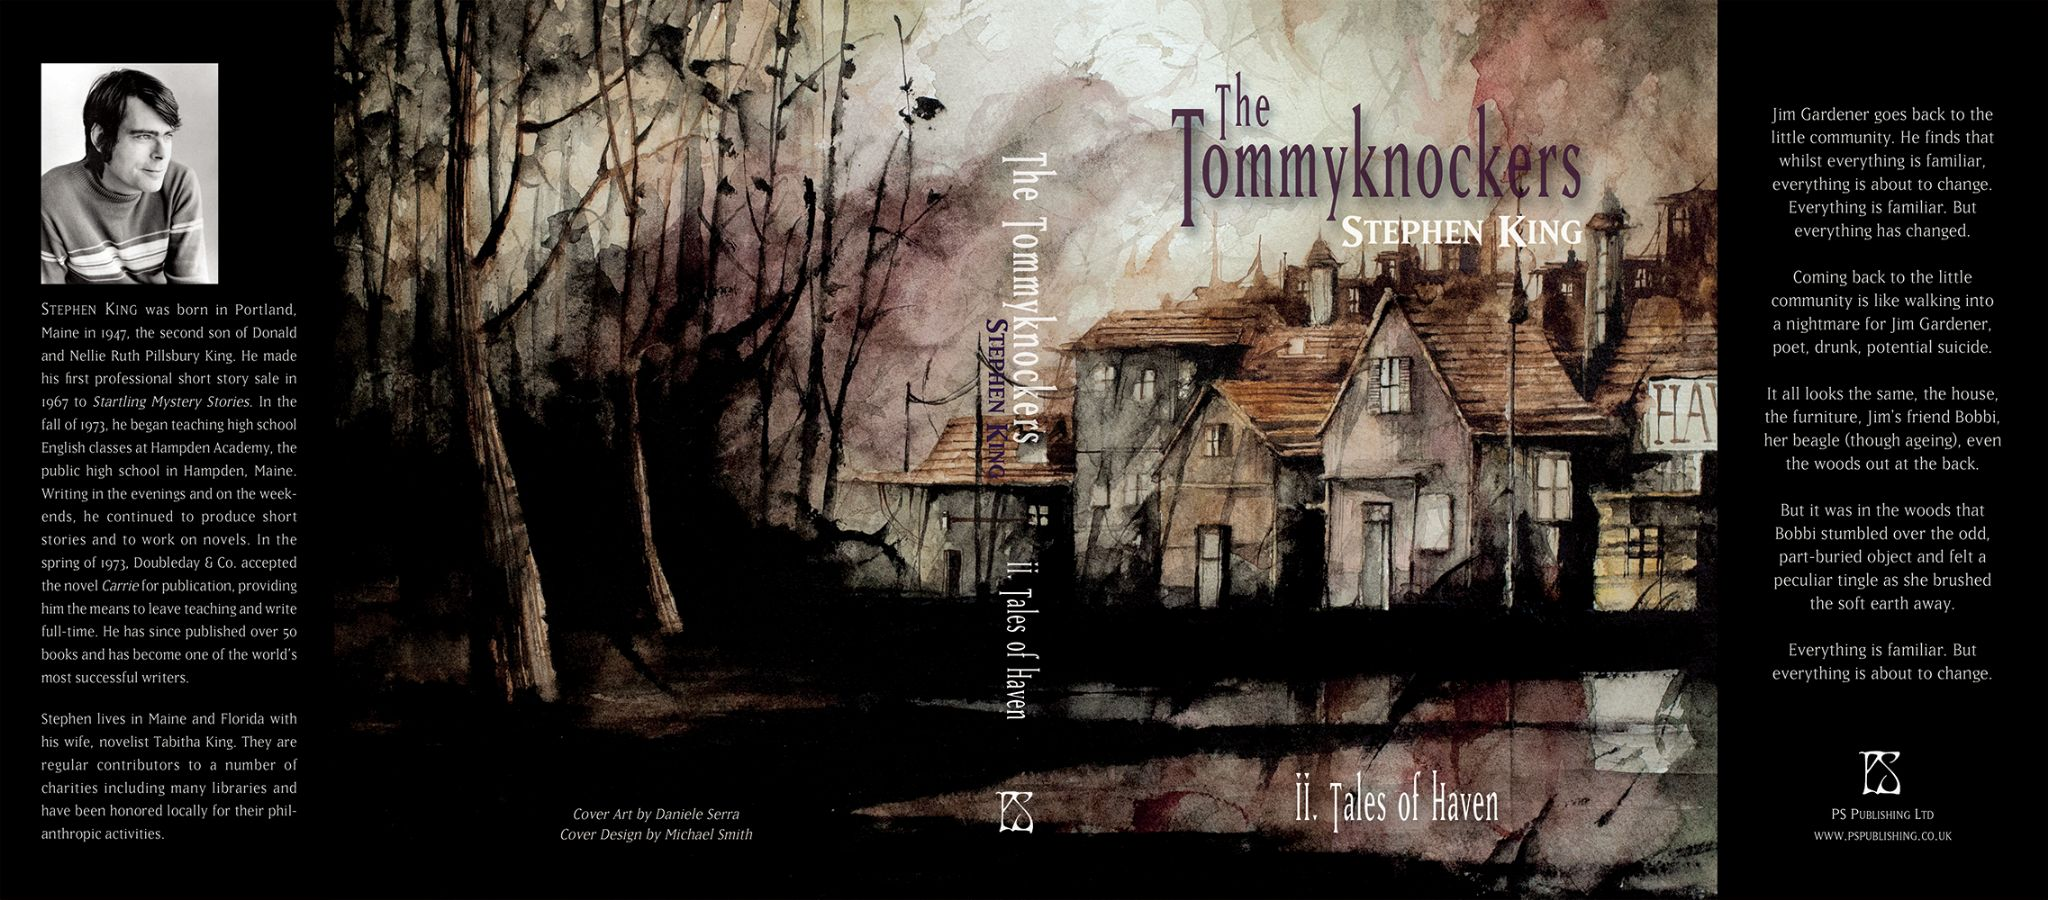 [the tommyknockers pspublishing 03]